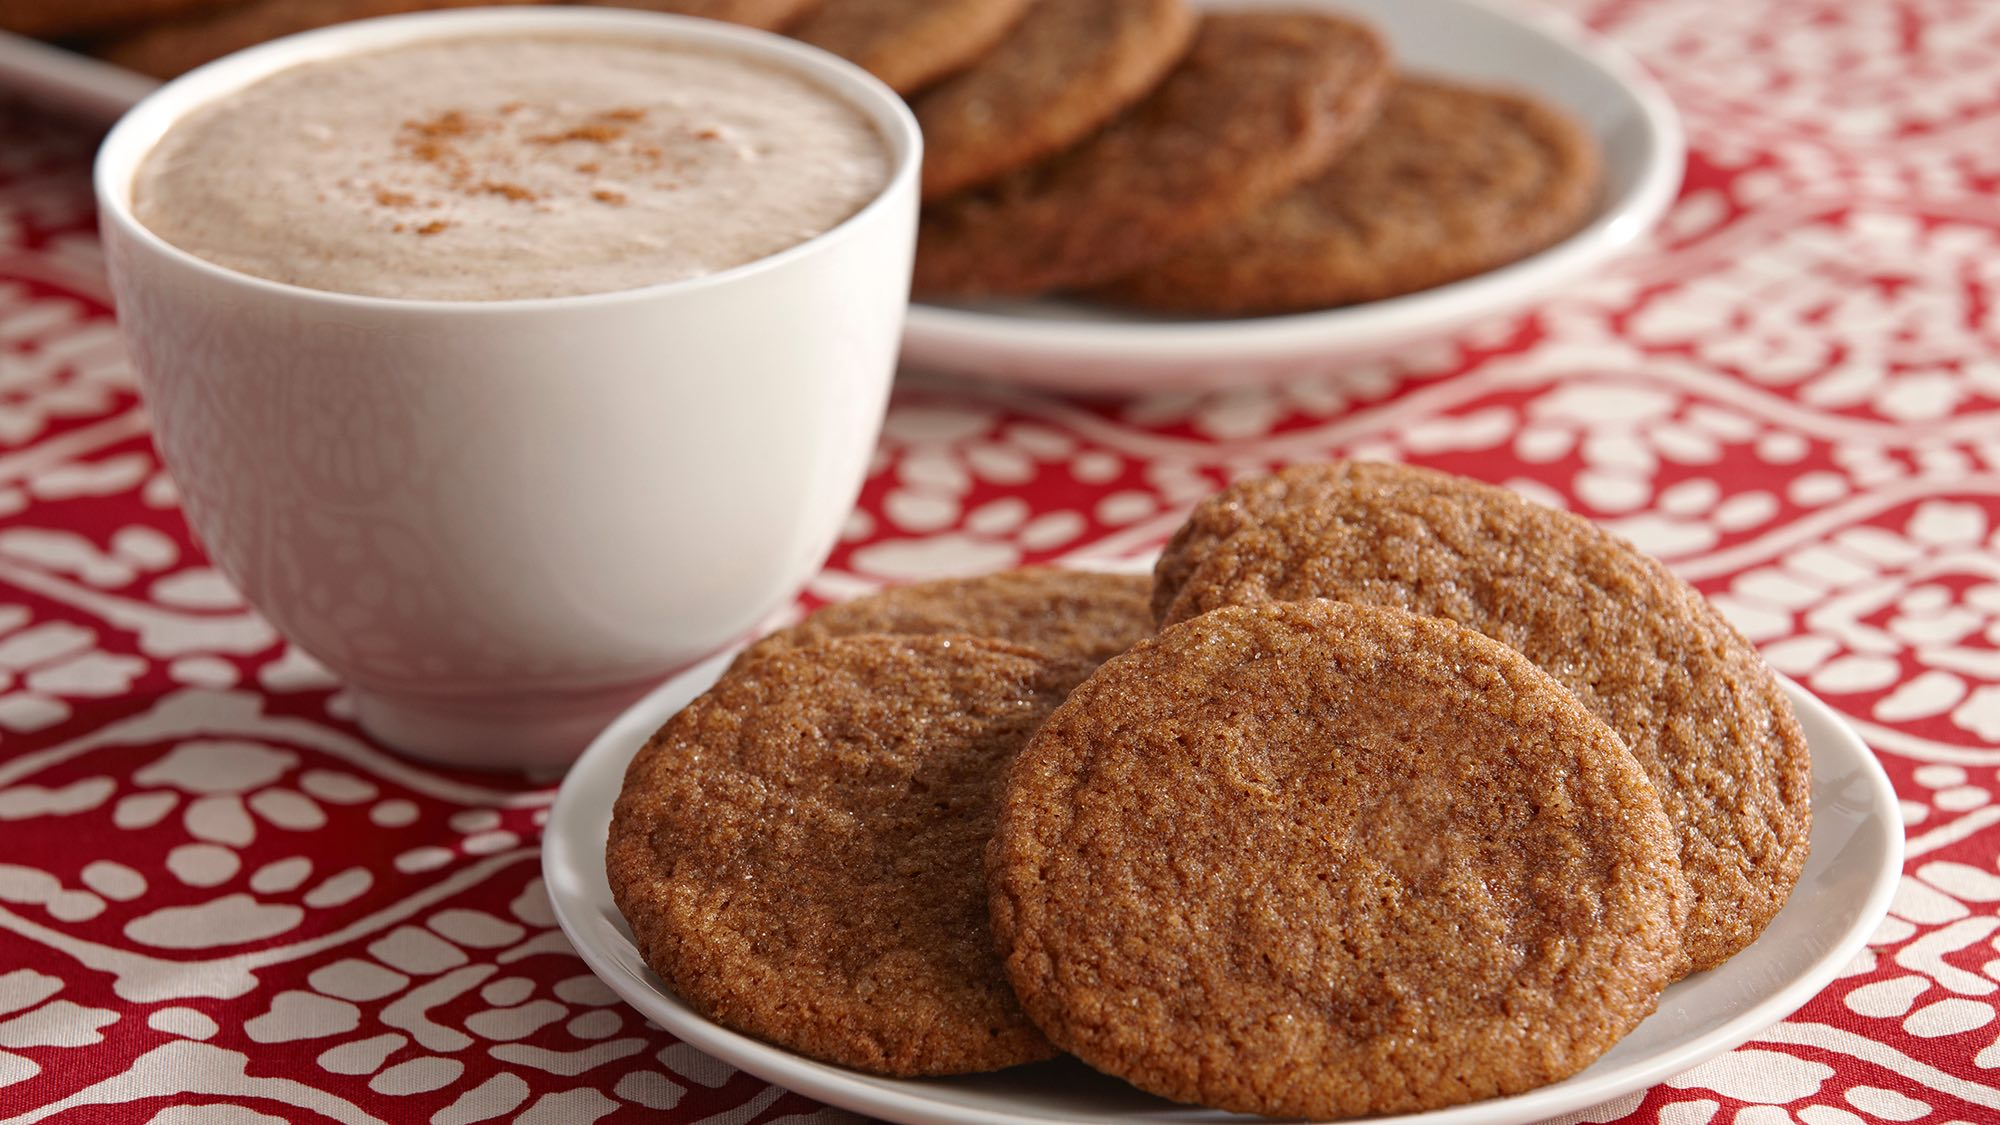 McCormick Molasses Cookies